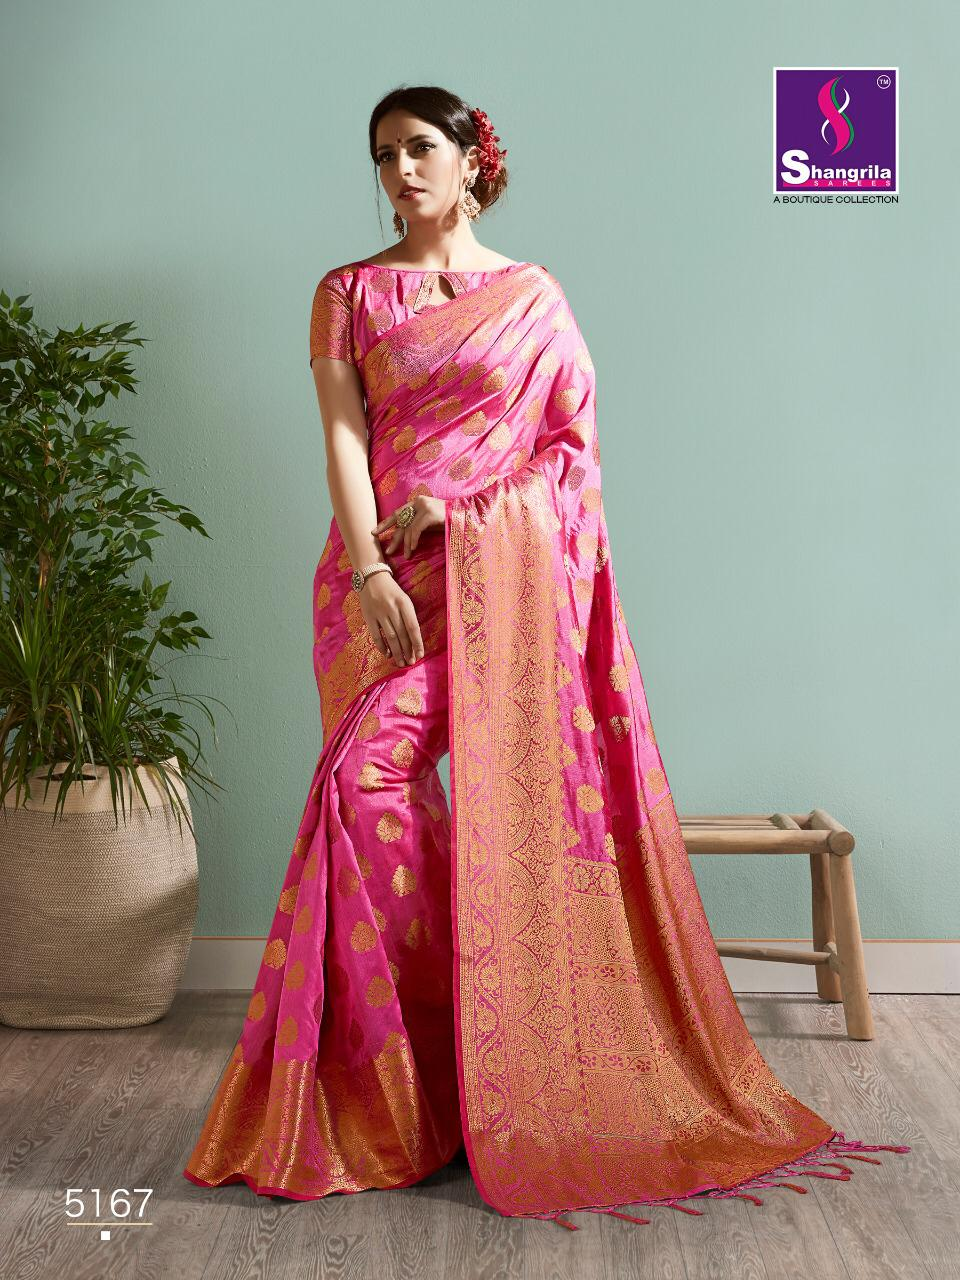 Shangrila Vasansi Silk 2 collection 1